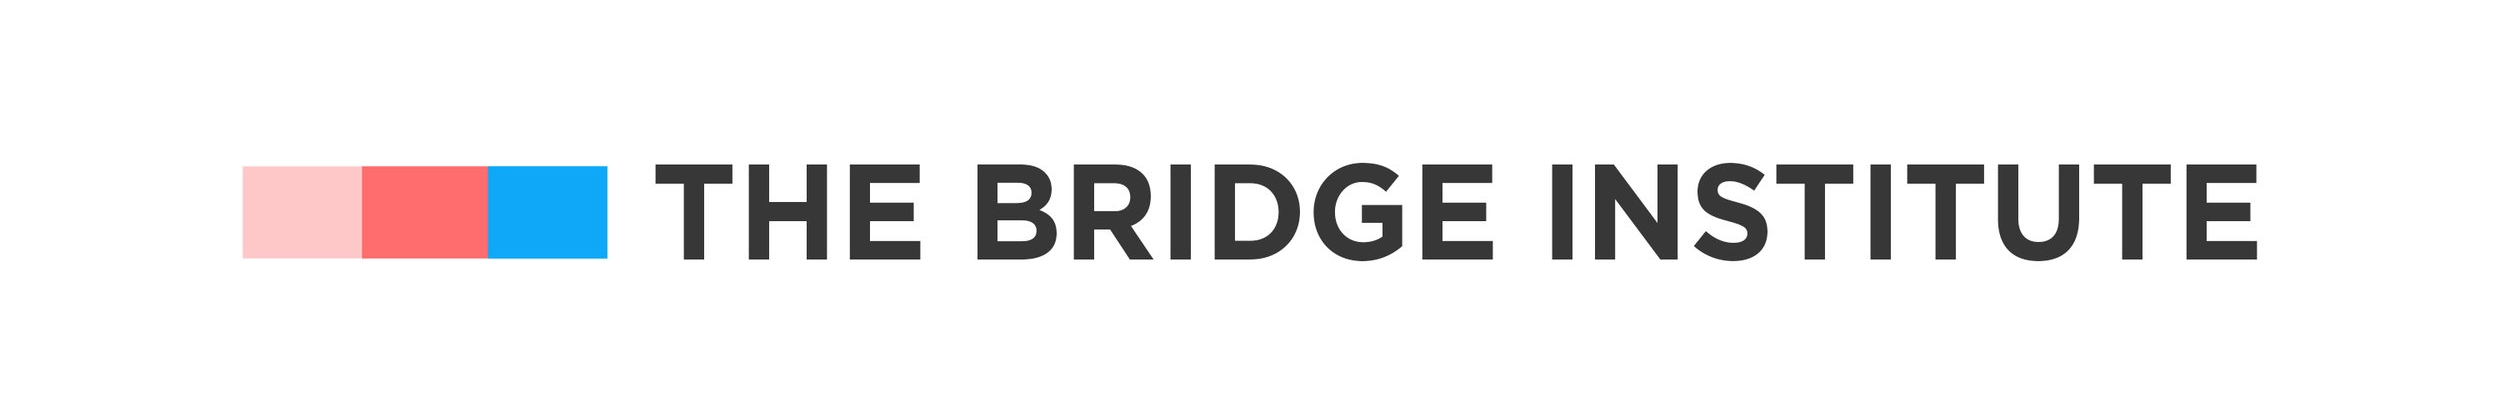 Placeholder for The Bridge Institute Logo